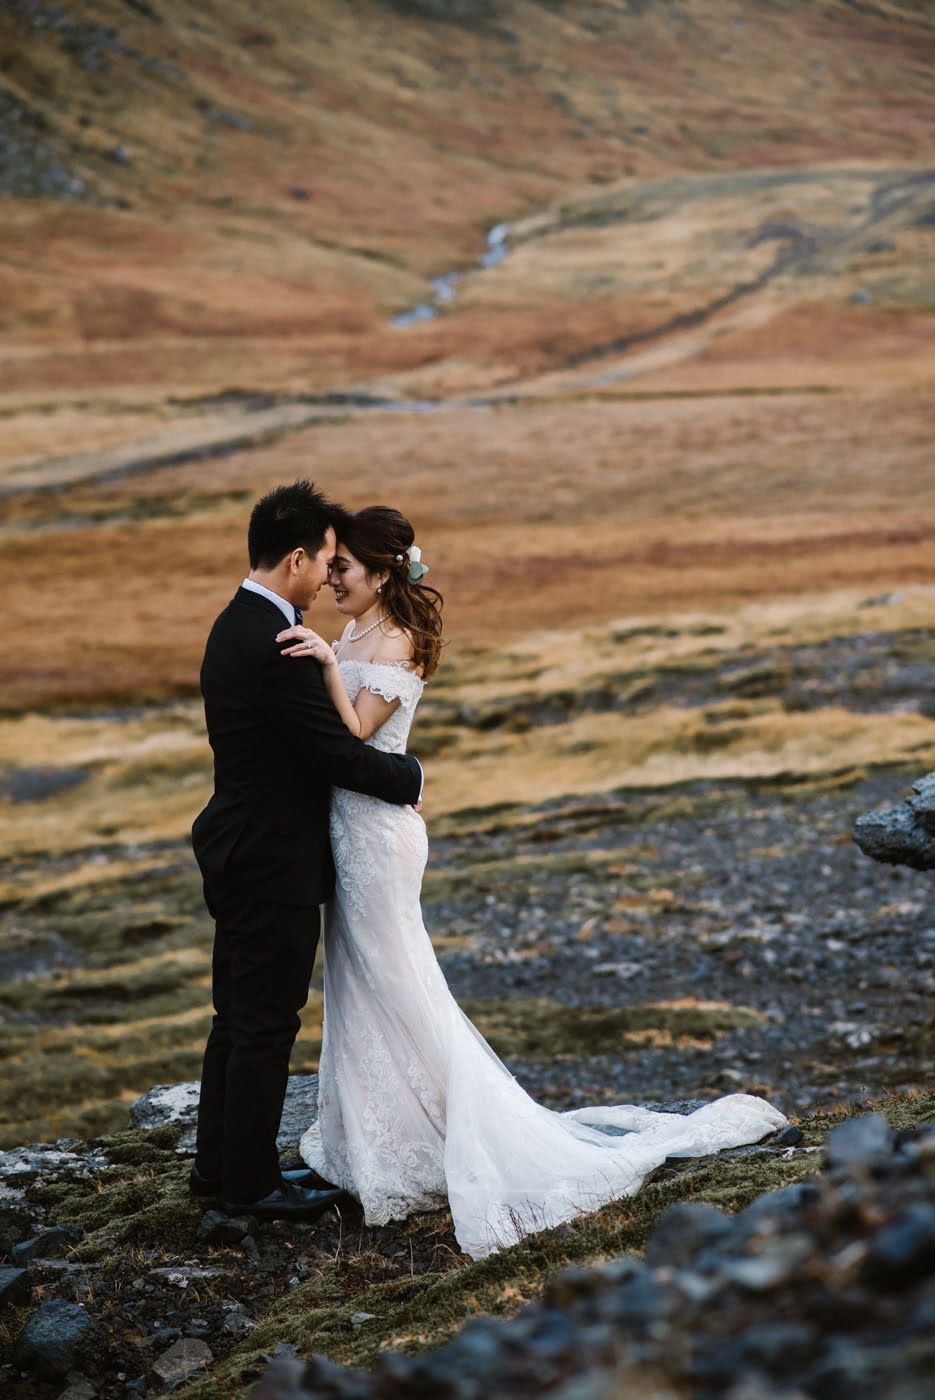 elopement in iceland in september